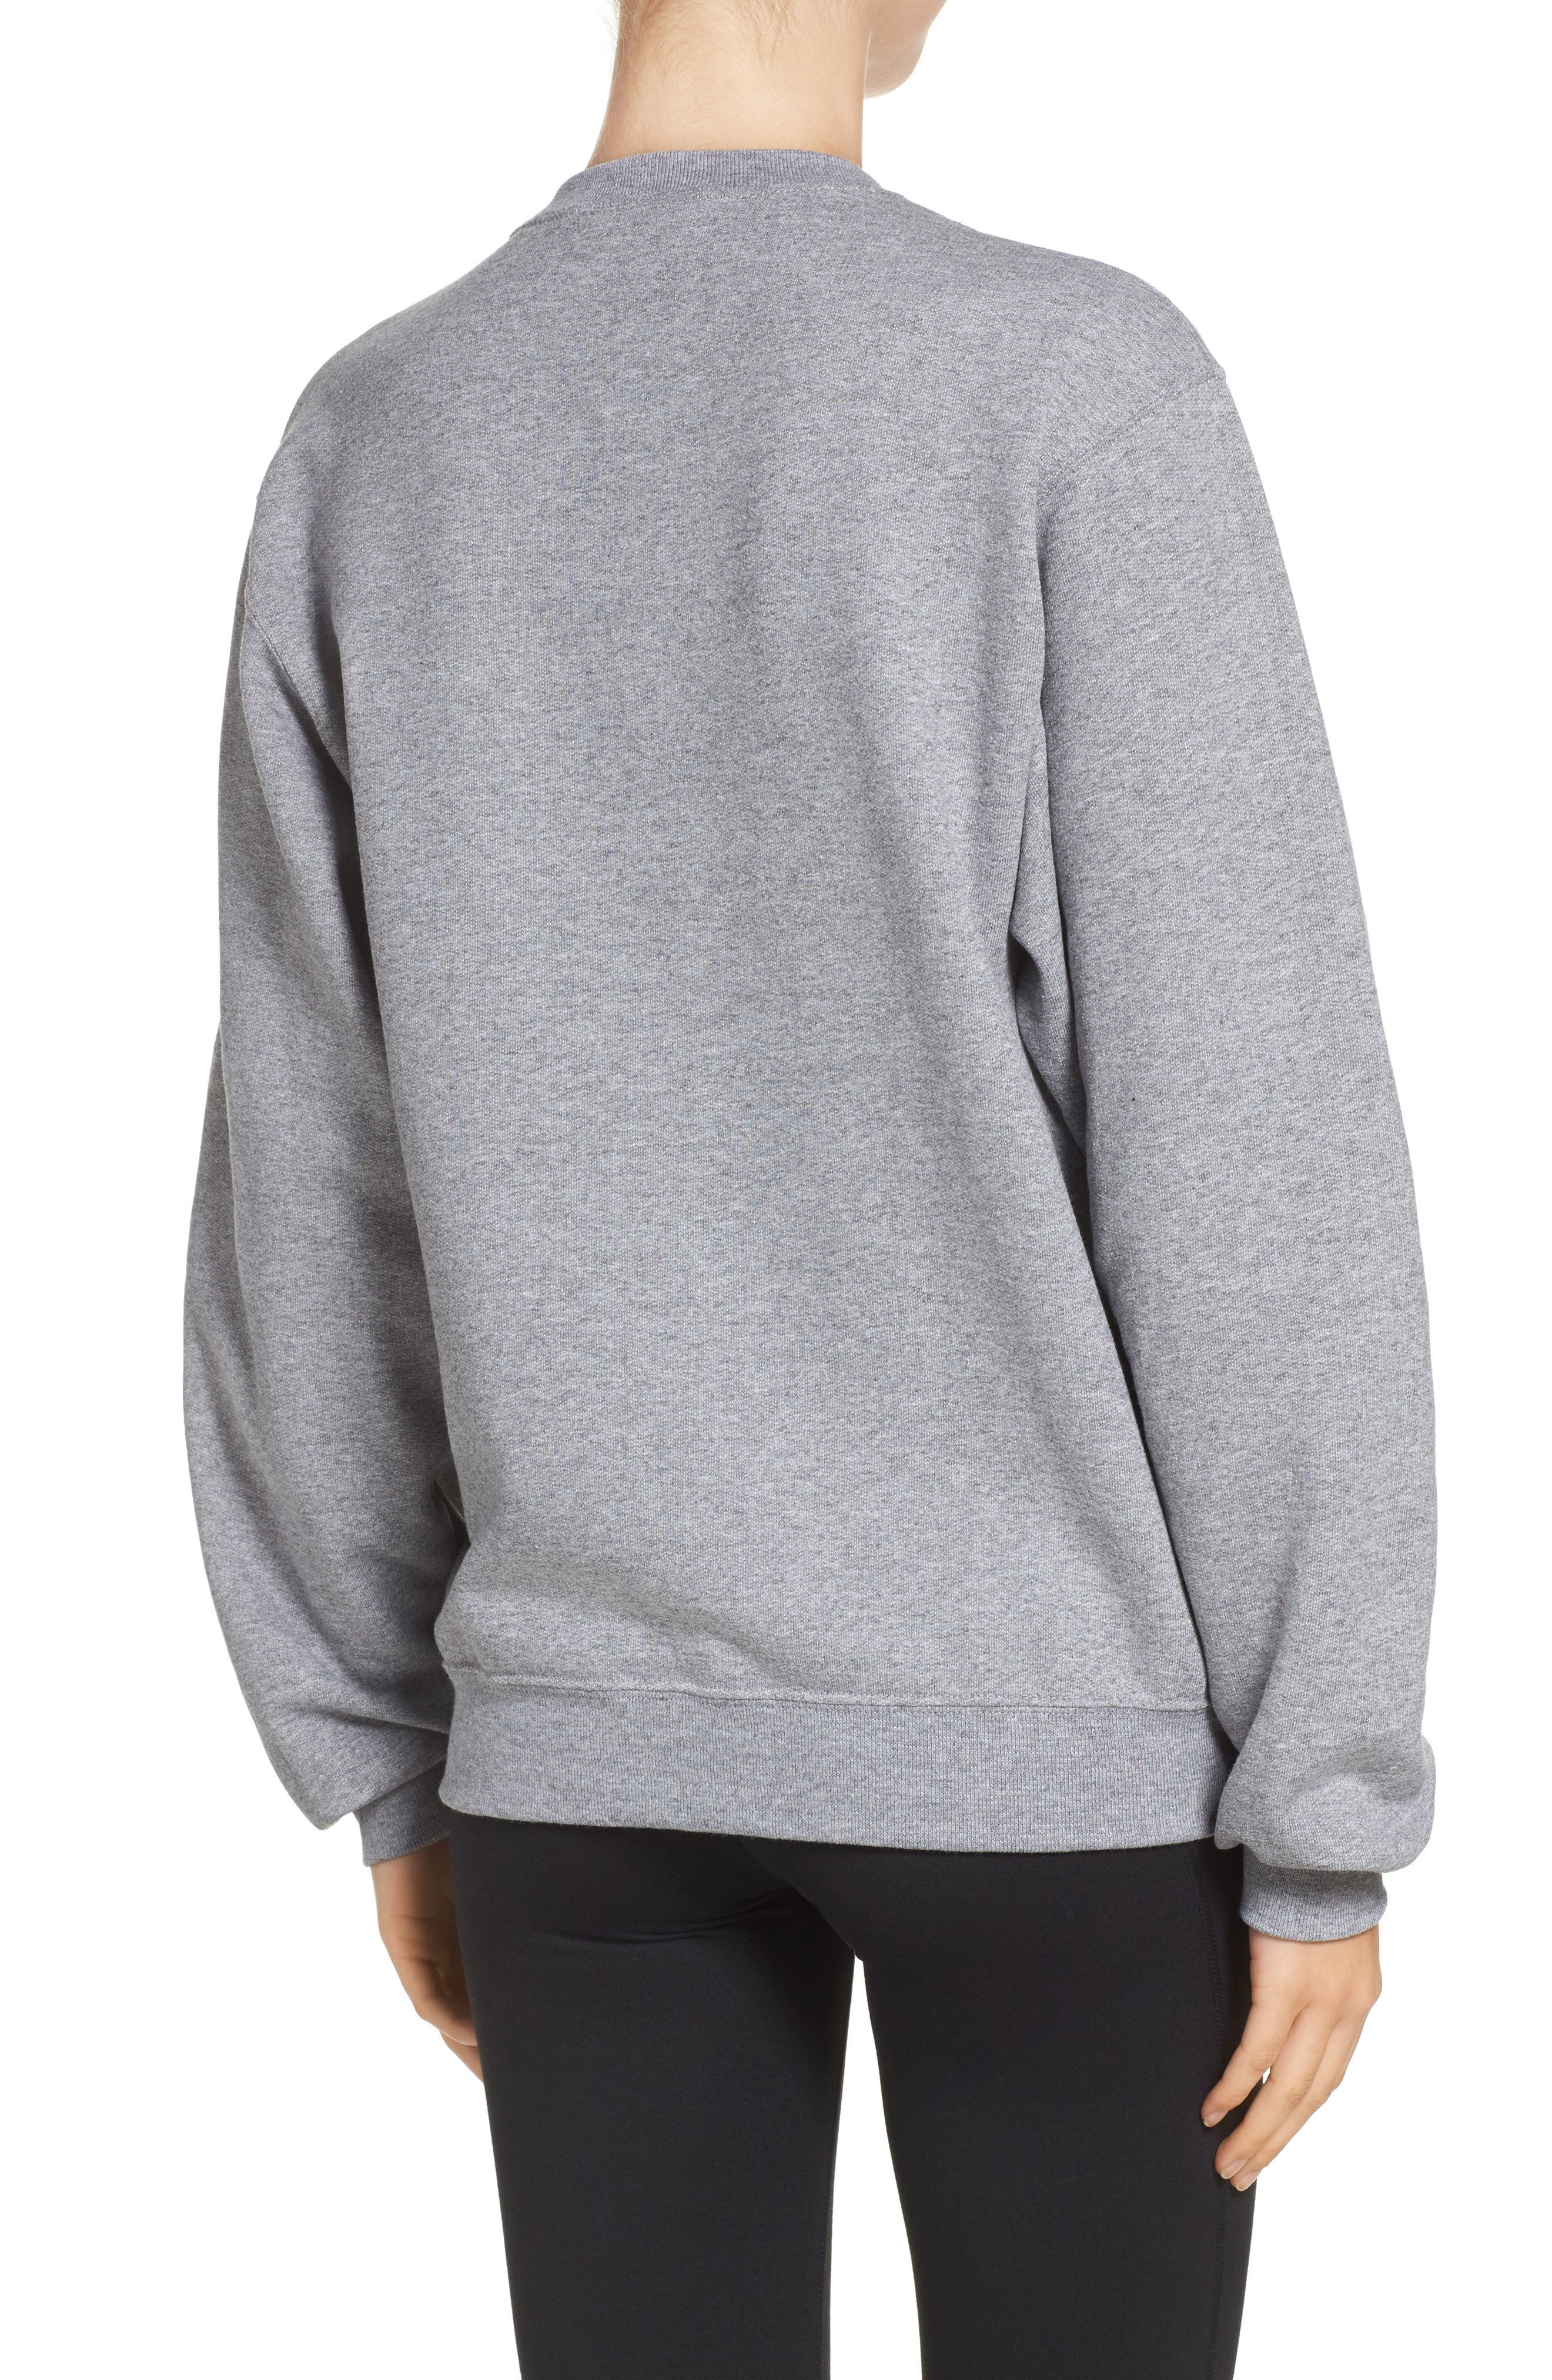 Alternate Image 2  - Private Party Workout Brunch Repeat Sweatshirt